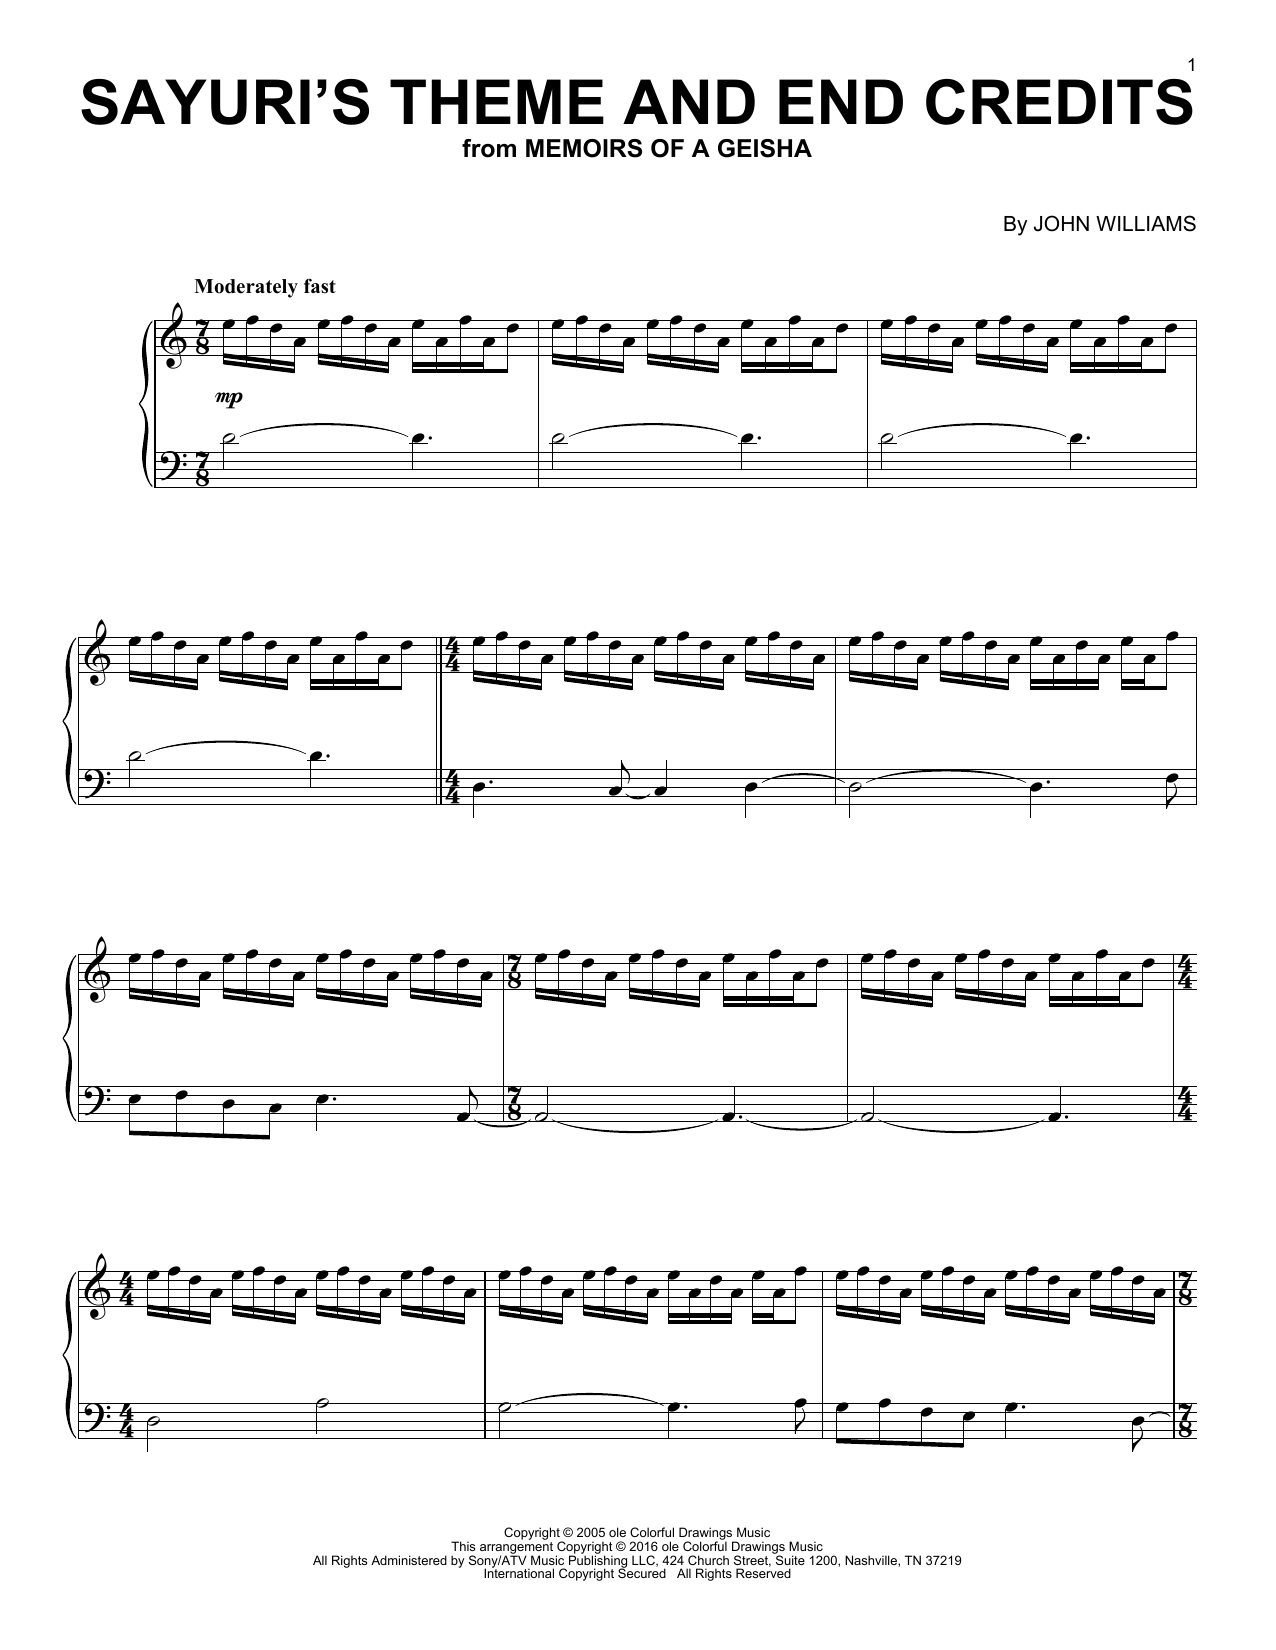 John Williams Sayuri's Theme And End Credits (from Memoirs Of A Geisha) sheet music notes and chords